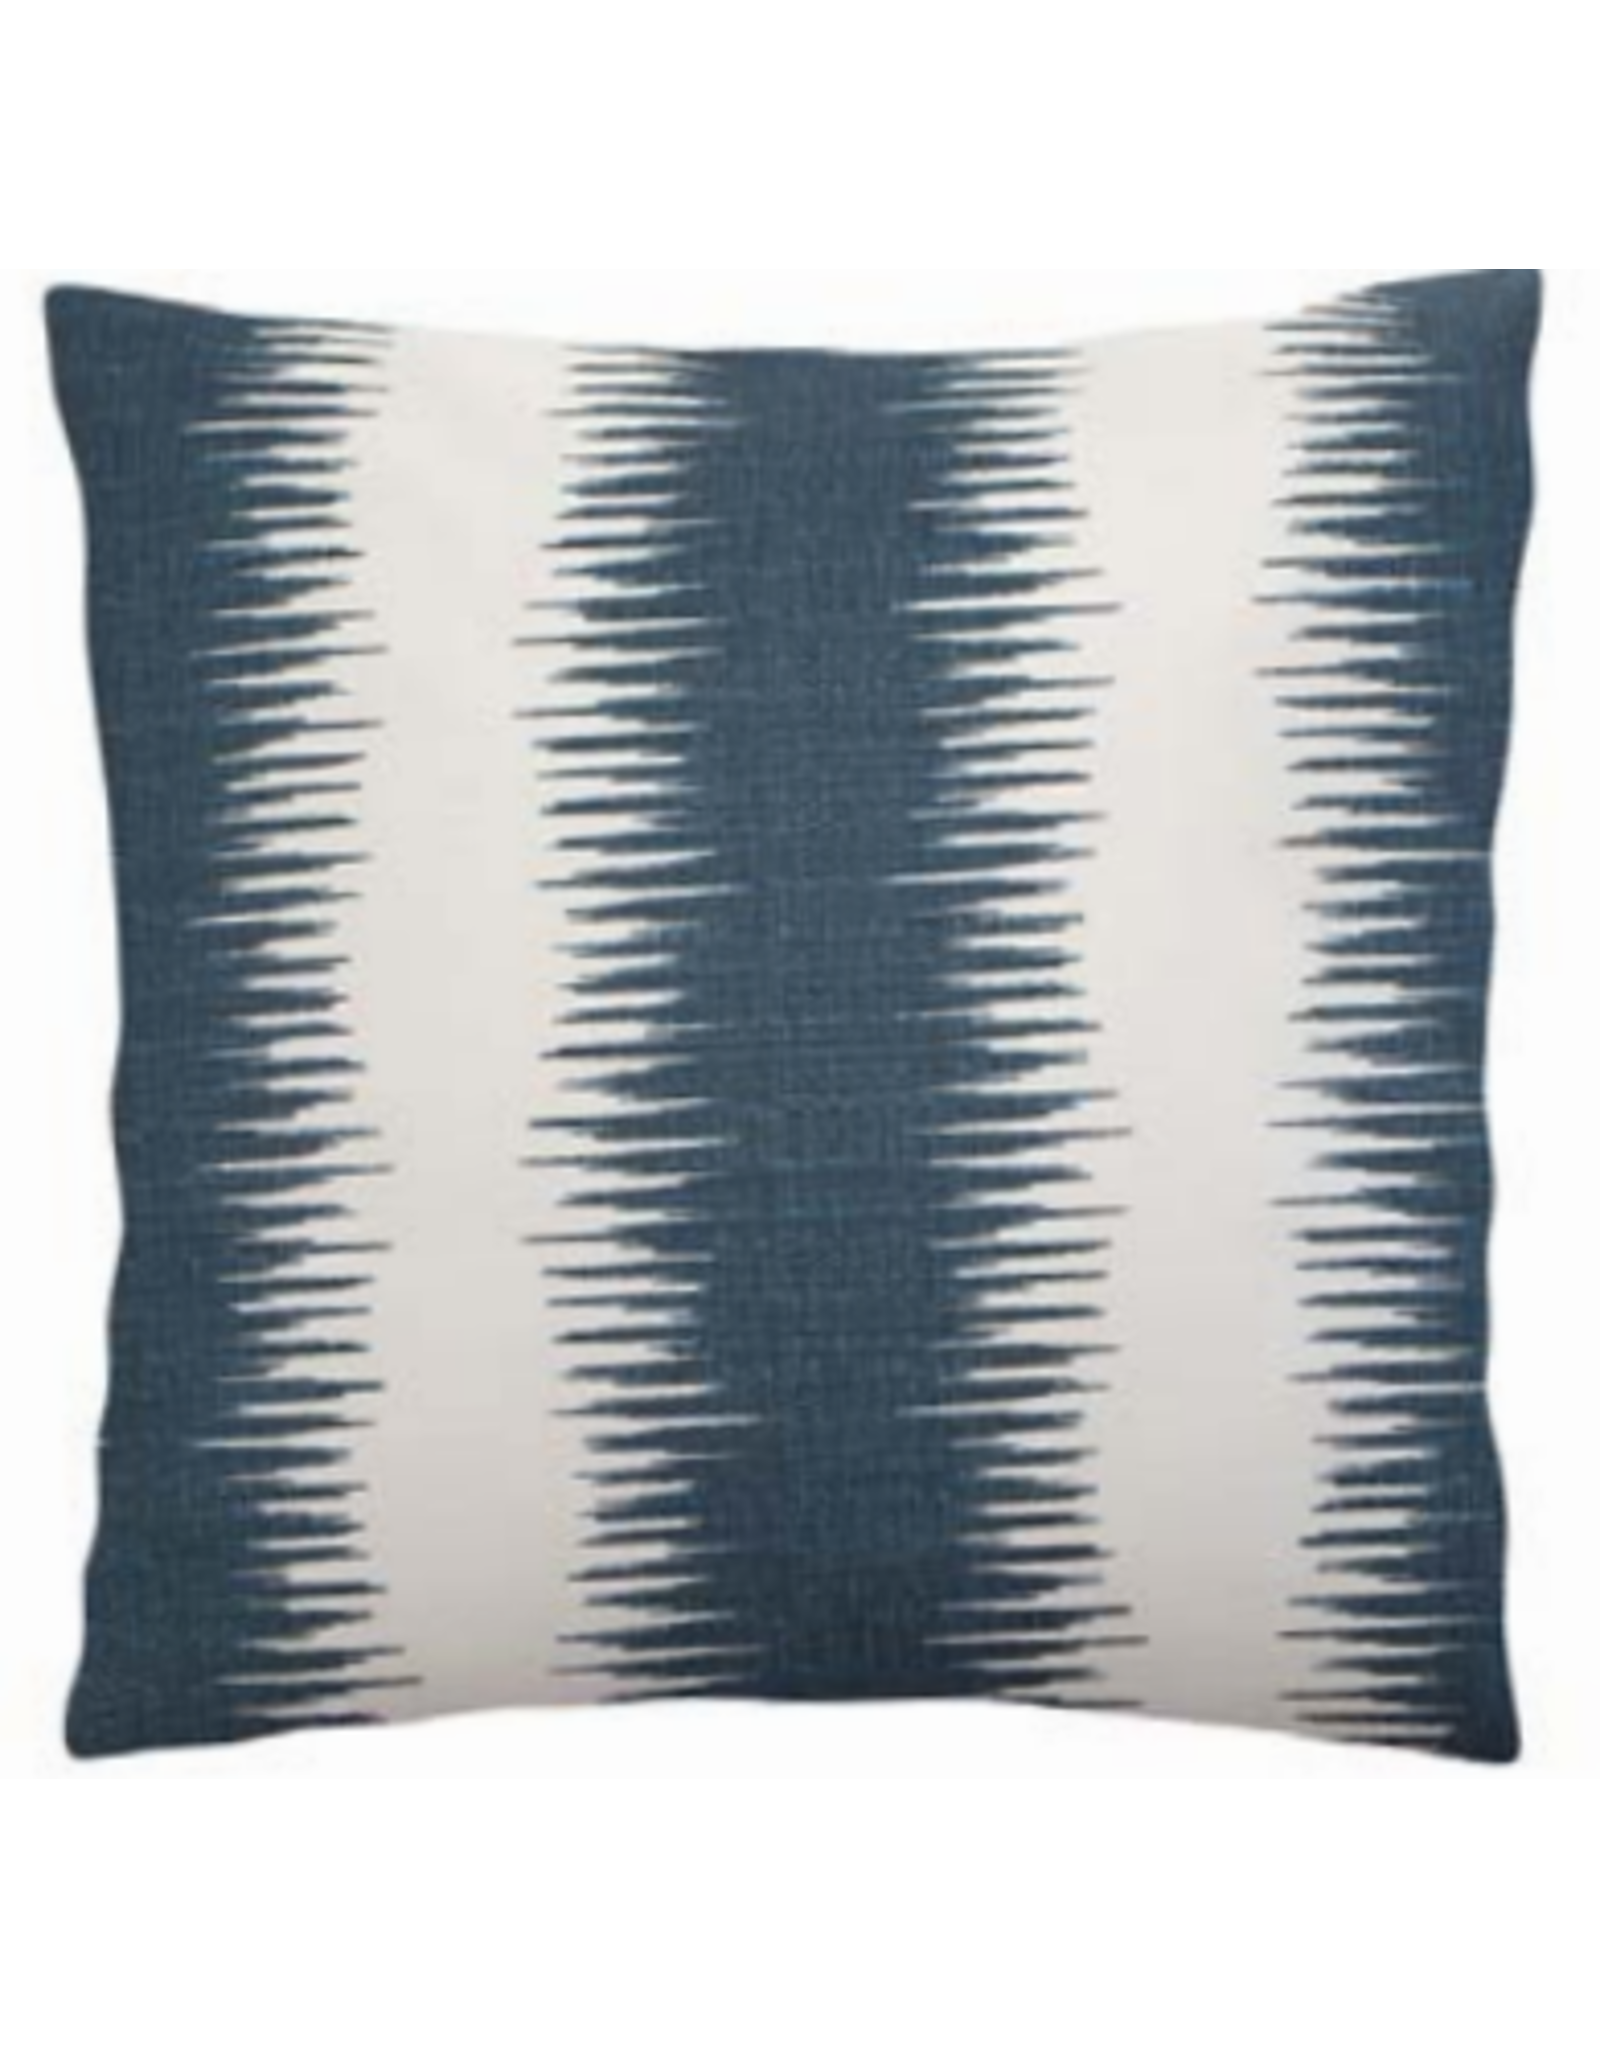 Soundwaves Indigo Pillow 22""